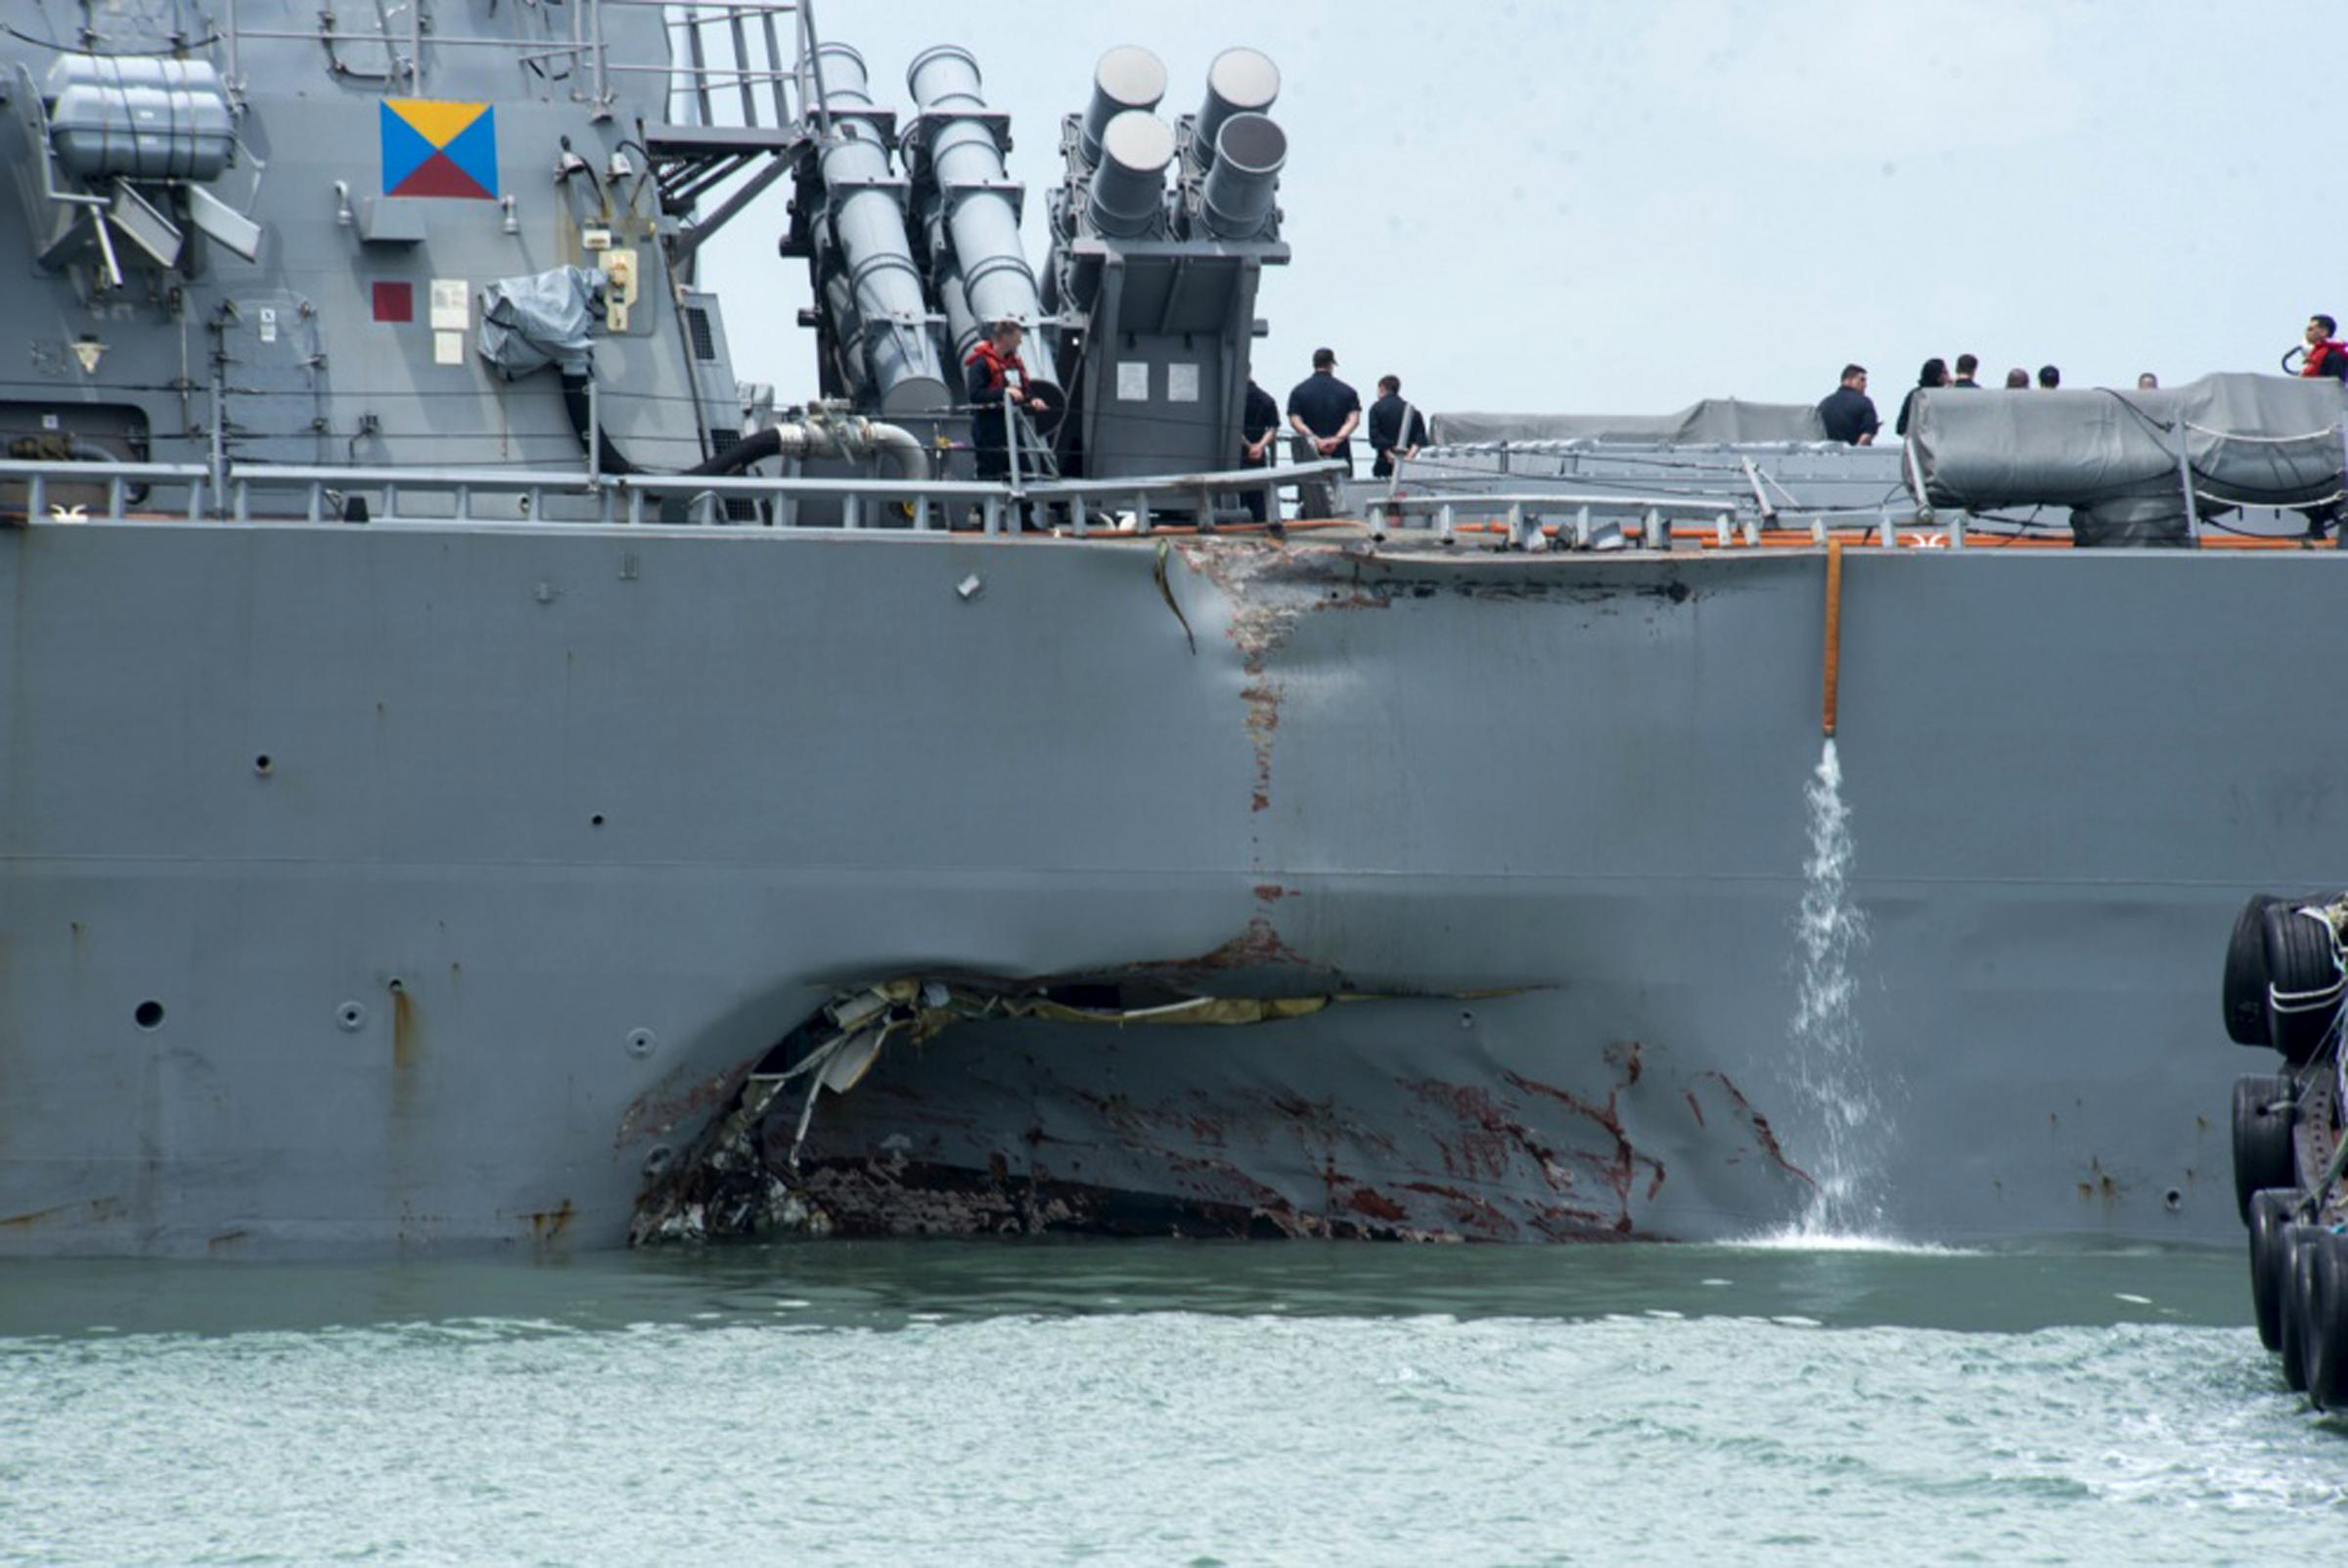 "Damage to the portside is visible as the Guided-missile destroyer USS John S. McCain (DDG 56) steers towards Changi naval base in Singapore following a collision with the merchant vessel Alnic MC Monday, Aug. 21, 2017. The USS John S. McCain was docked at Singapore's naval base with ""significant damage"" to its hull after an early morning collision with the Alnic MC as vessels from several nations searched Monday for missing U.S. sailors. (Mass Communication Specialist 2nd Class Joshua Fulton/U.S. Navy photo via AP)"